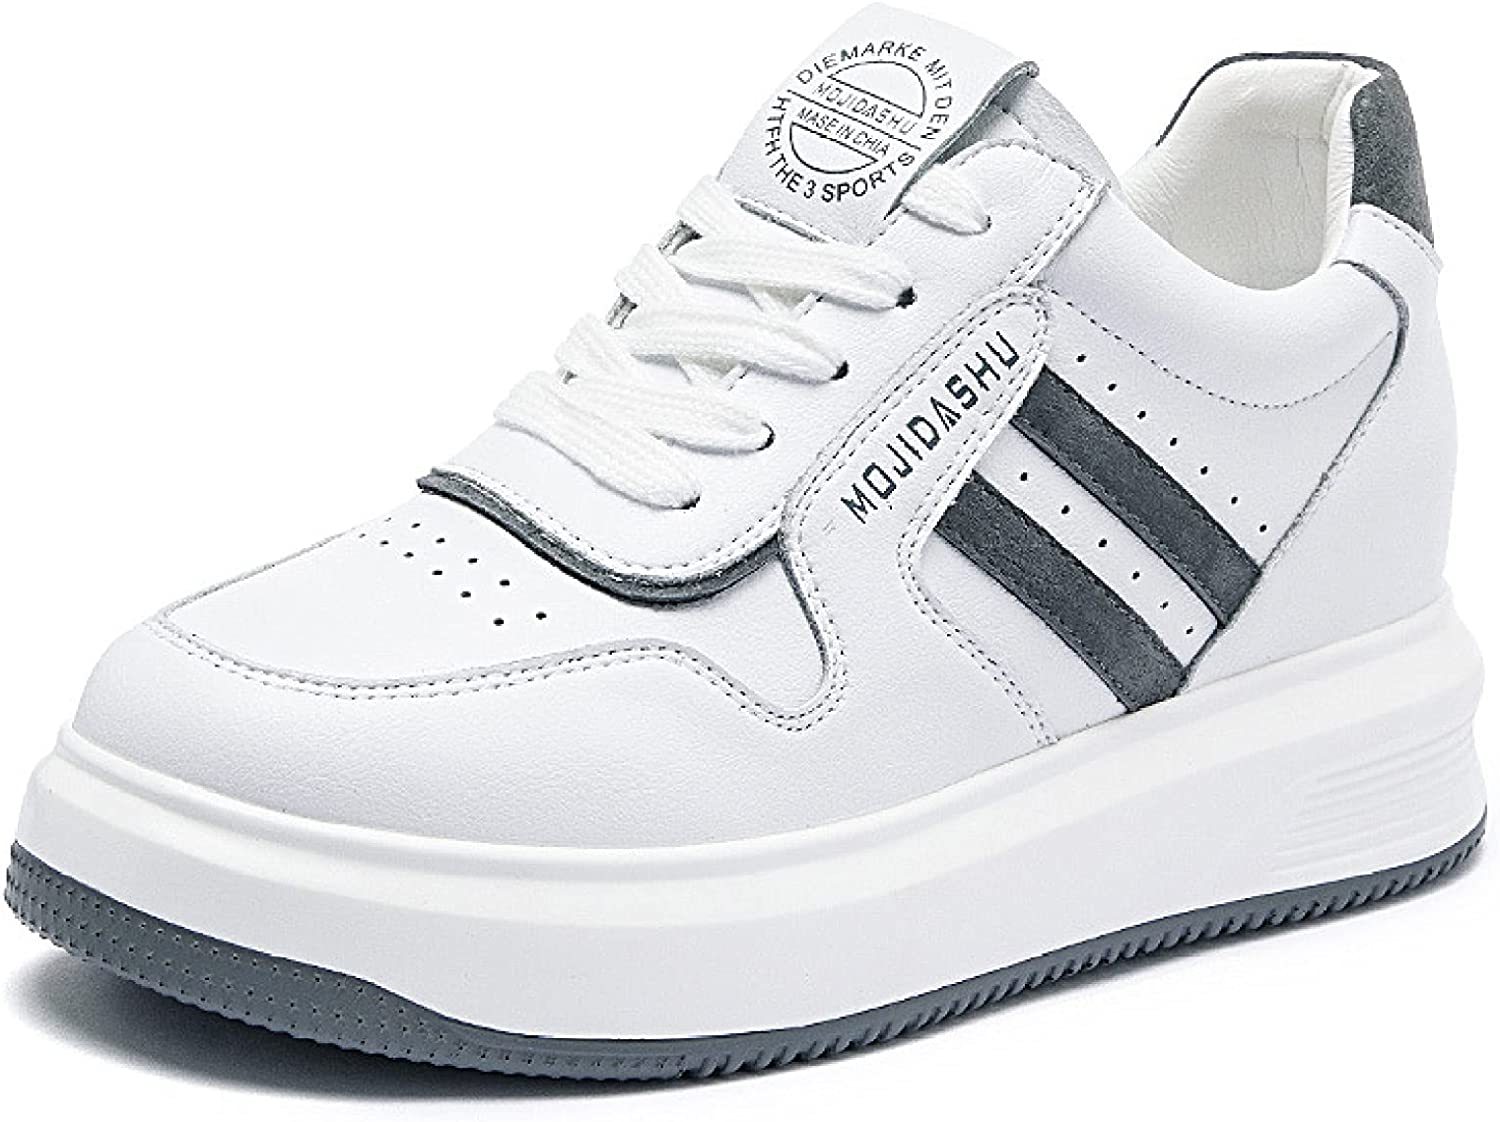 Max 48% OFF High Wedges for Womens' Sneakers Comfortable Running Tennis Max 75% OFF